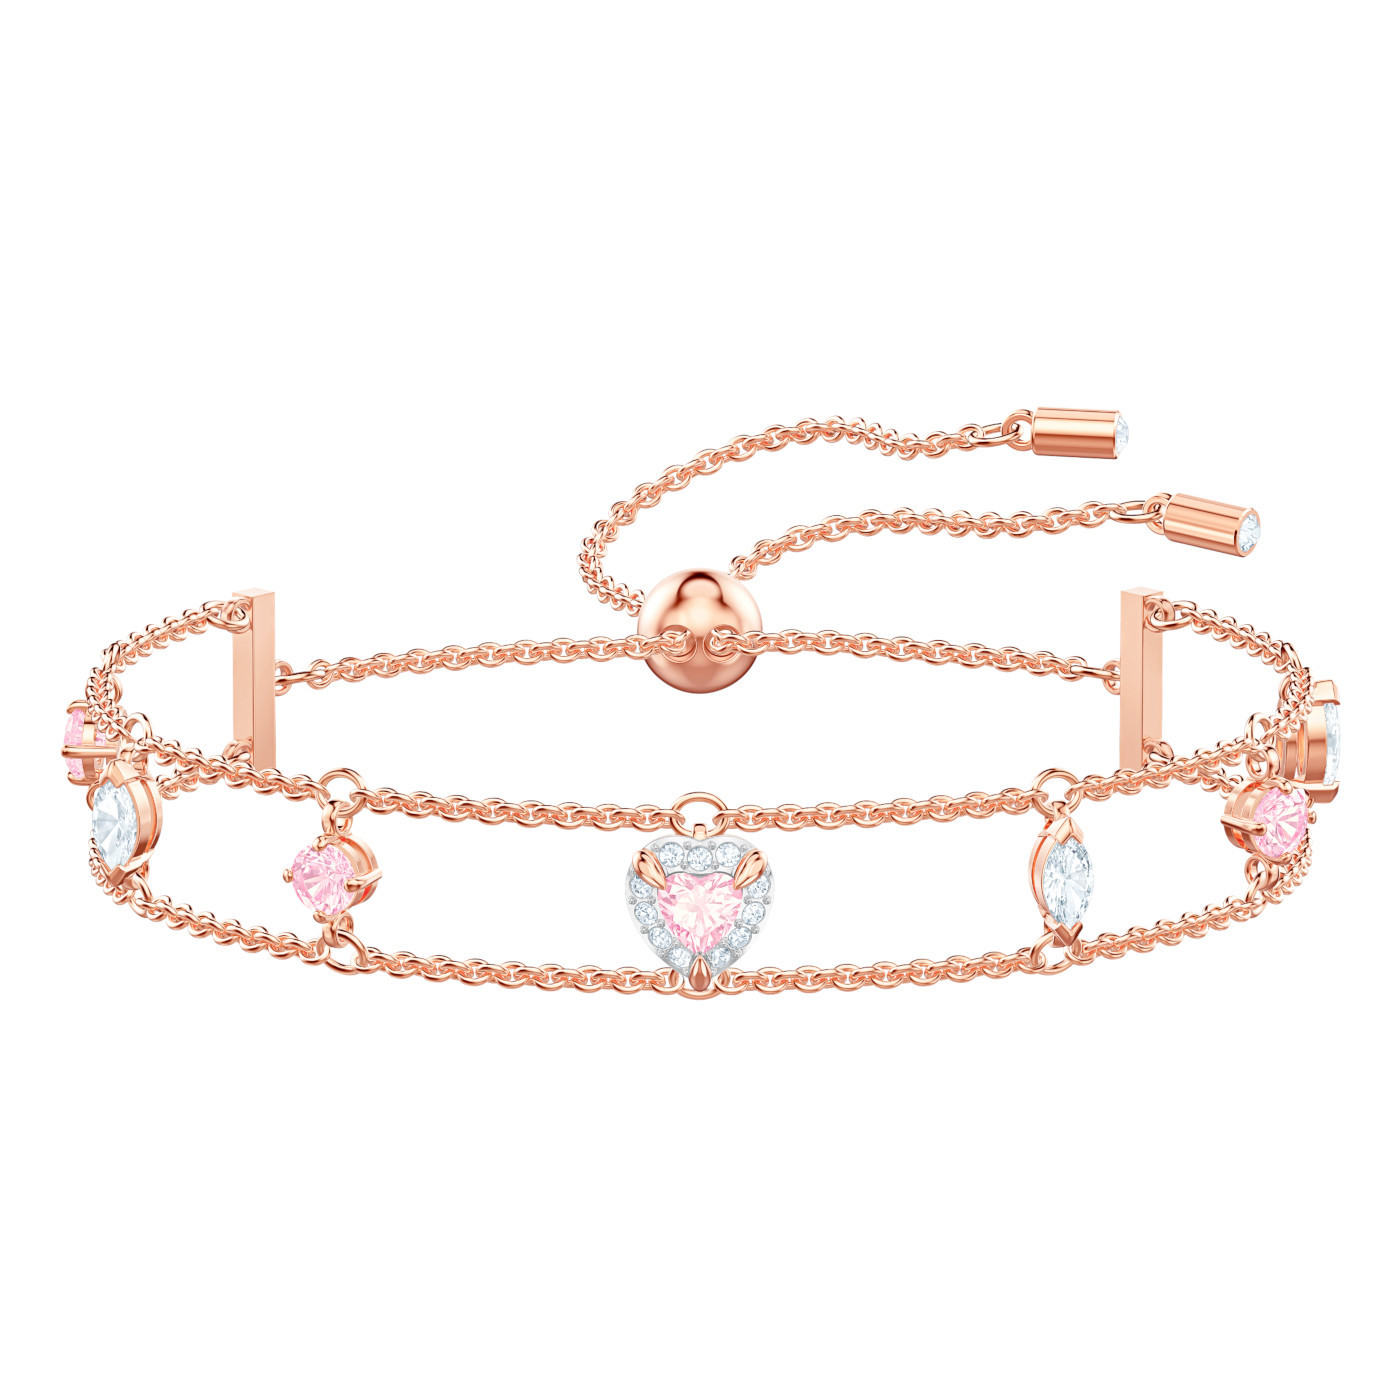 Swarovski 5446304 Armband One rosekleurig-multicolored